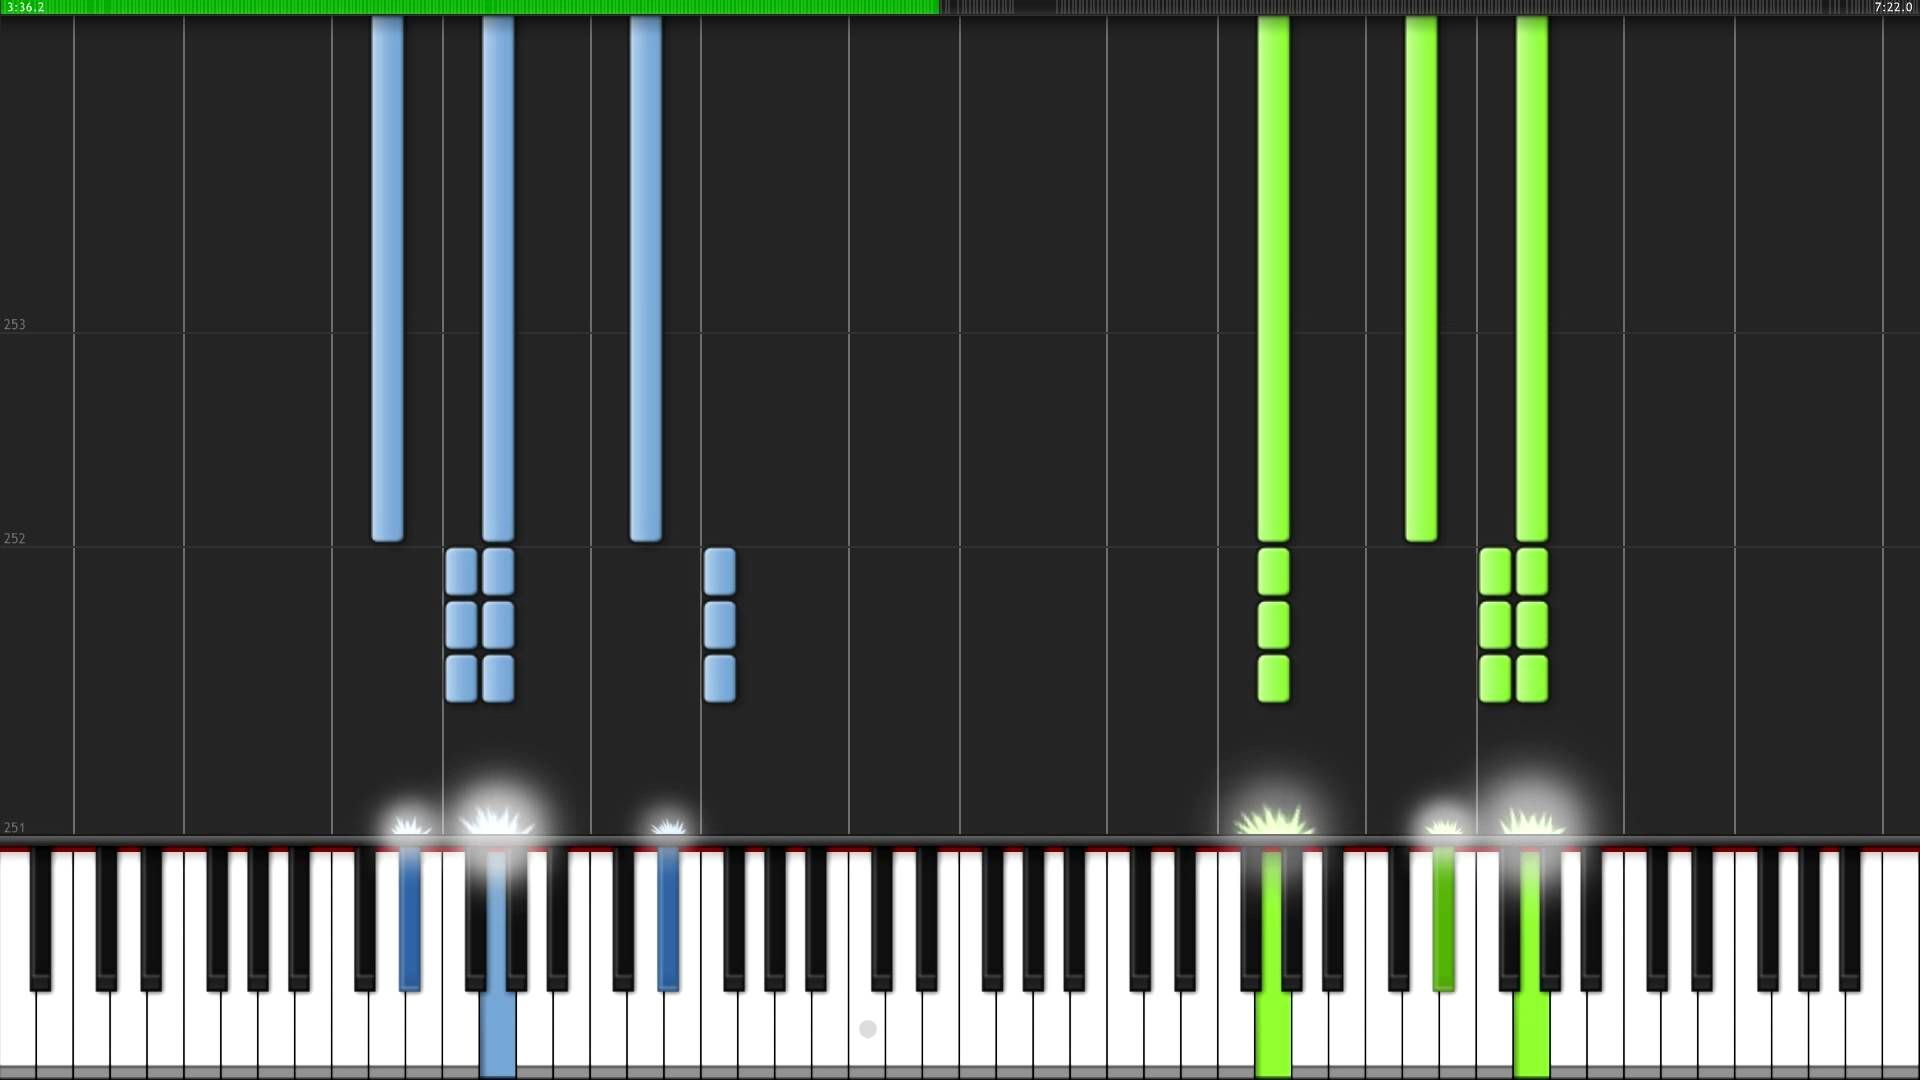 The rains of castamere game of thrones piano tutorial the rains of castamere game of thrones piano tutorial synthesia music tutorials pinterest pianos and youtube baditri Gallery